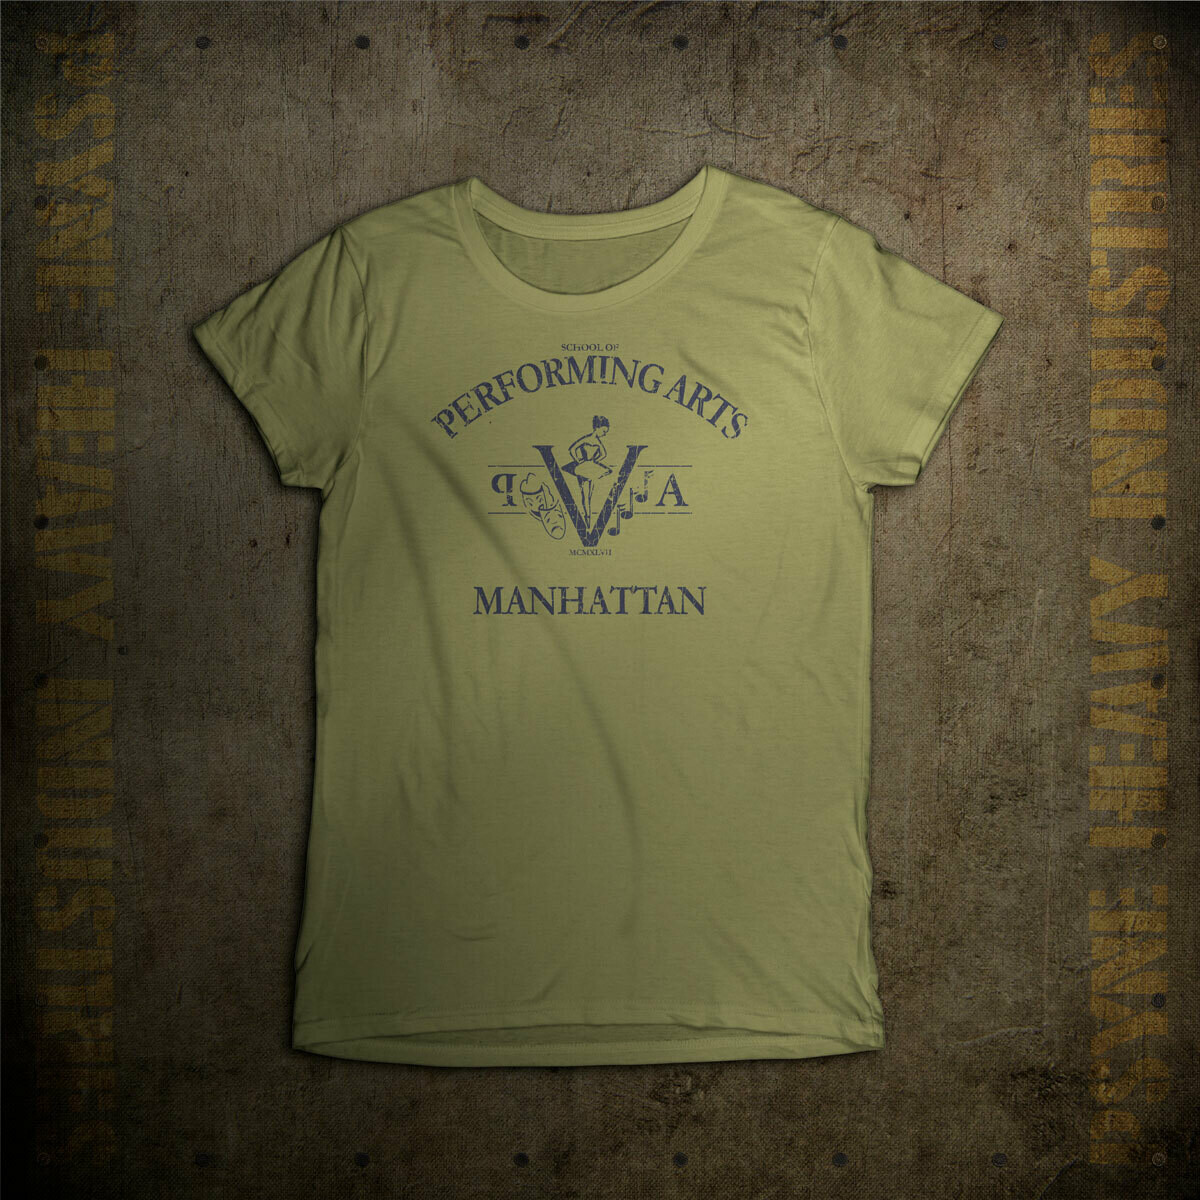 High School of Performing Arts Vintage Manhattan NYC T-Shirt - Women's